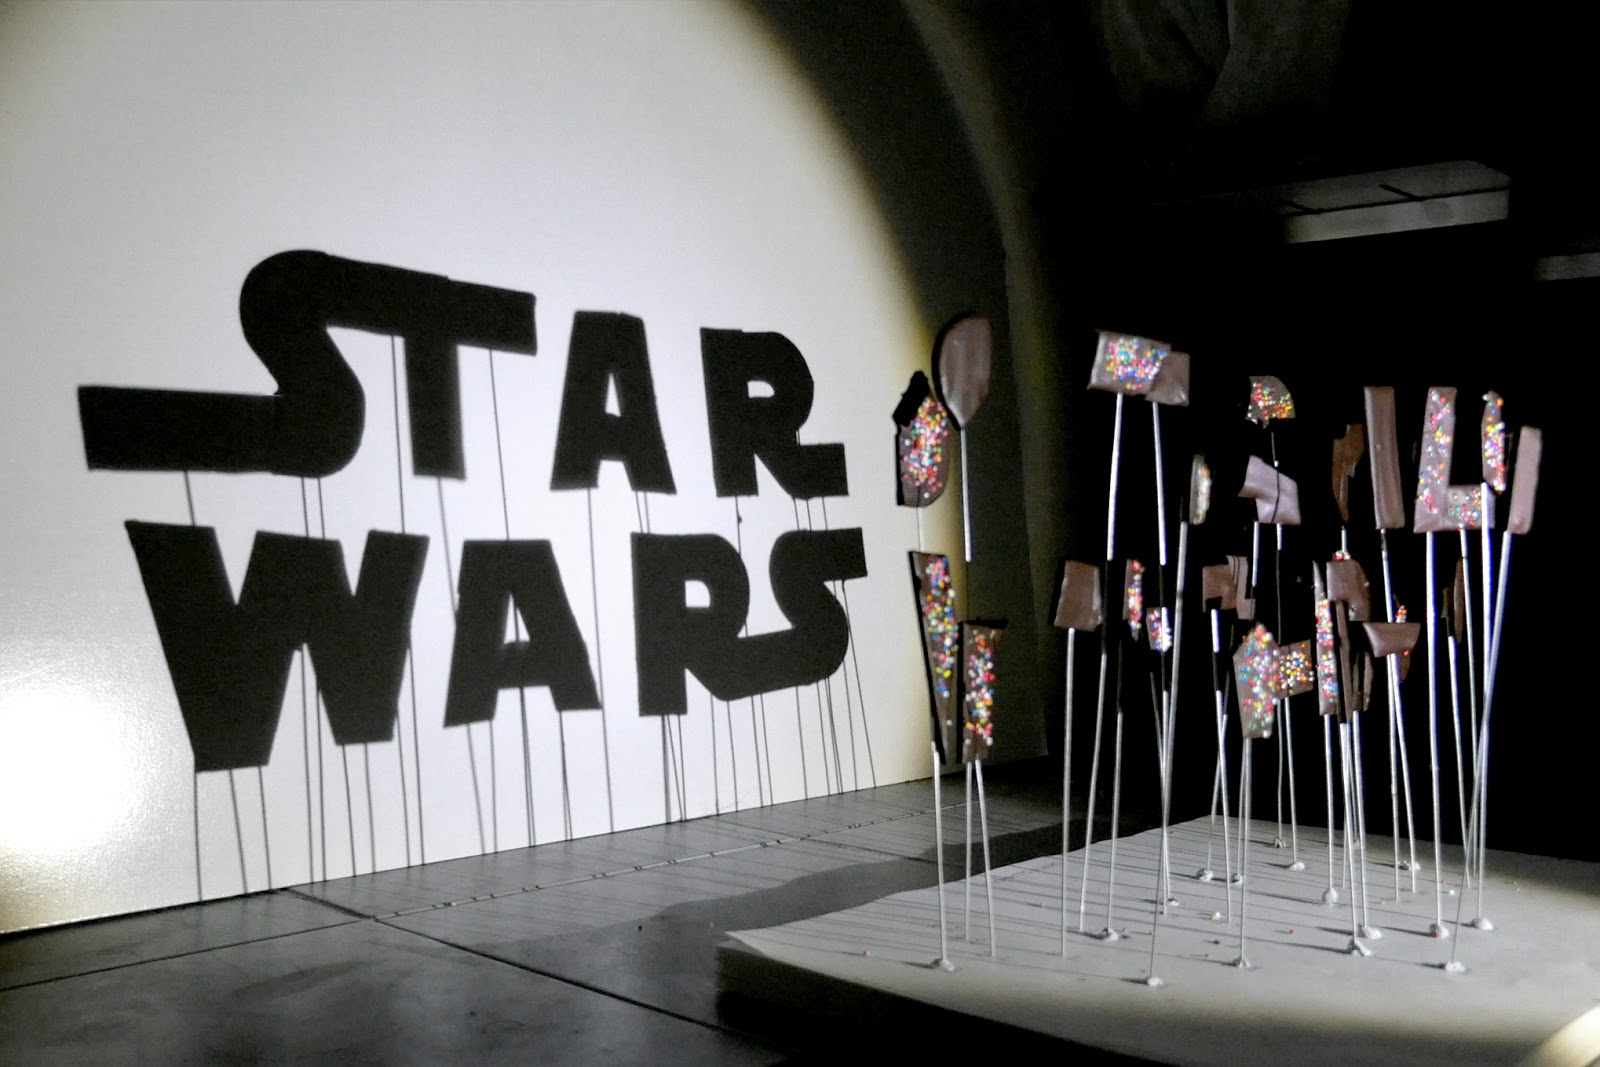 hong yi star wars